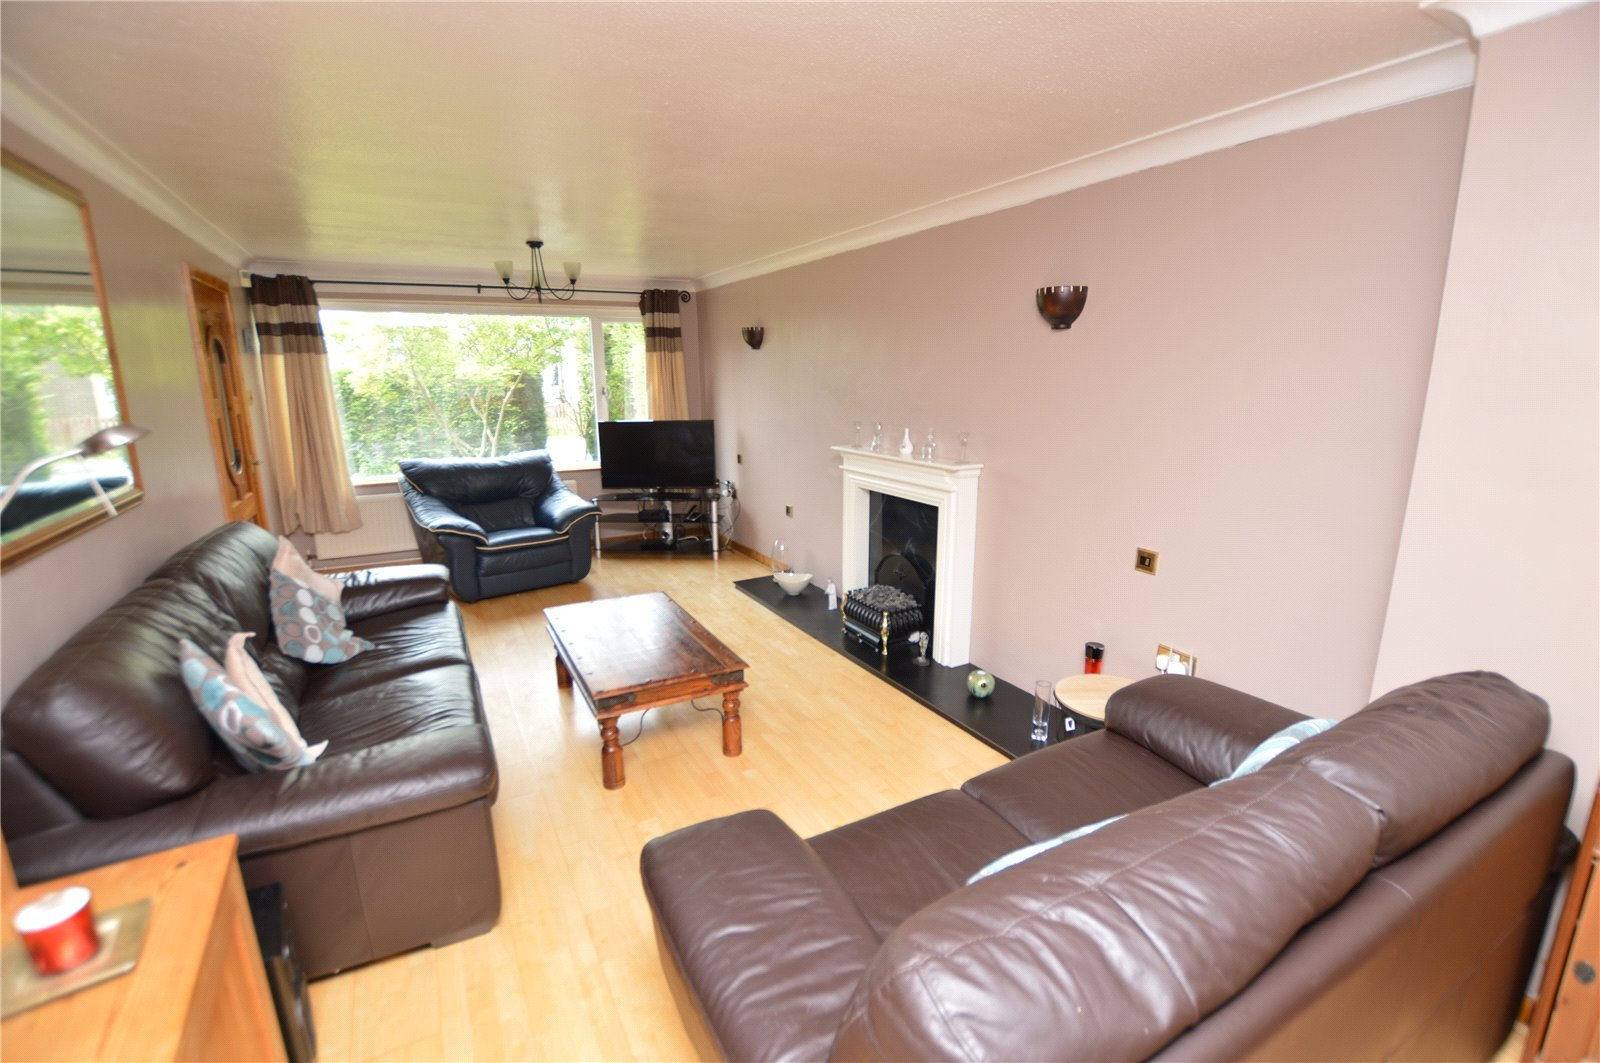 Property for sale in Wetherby, living area